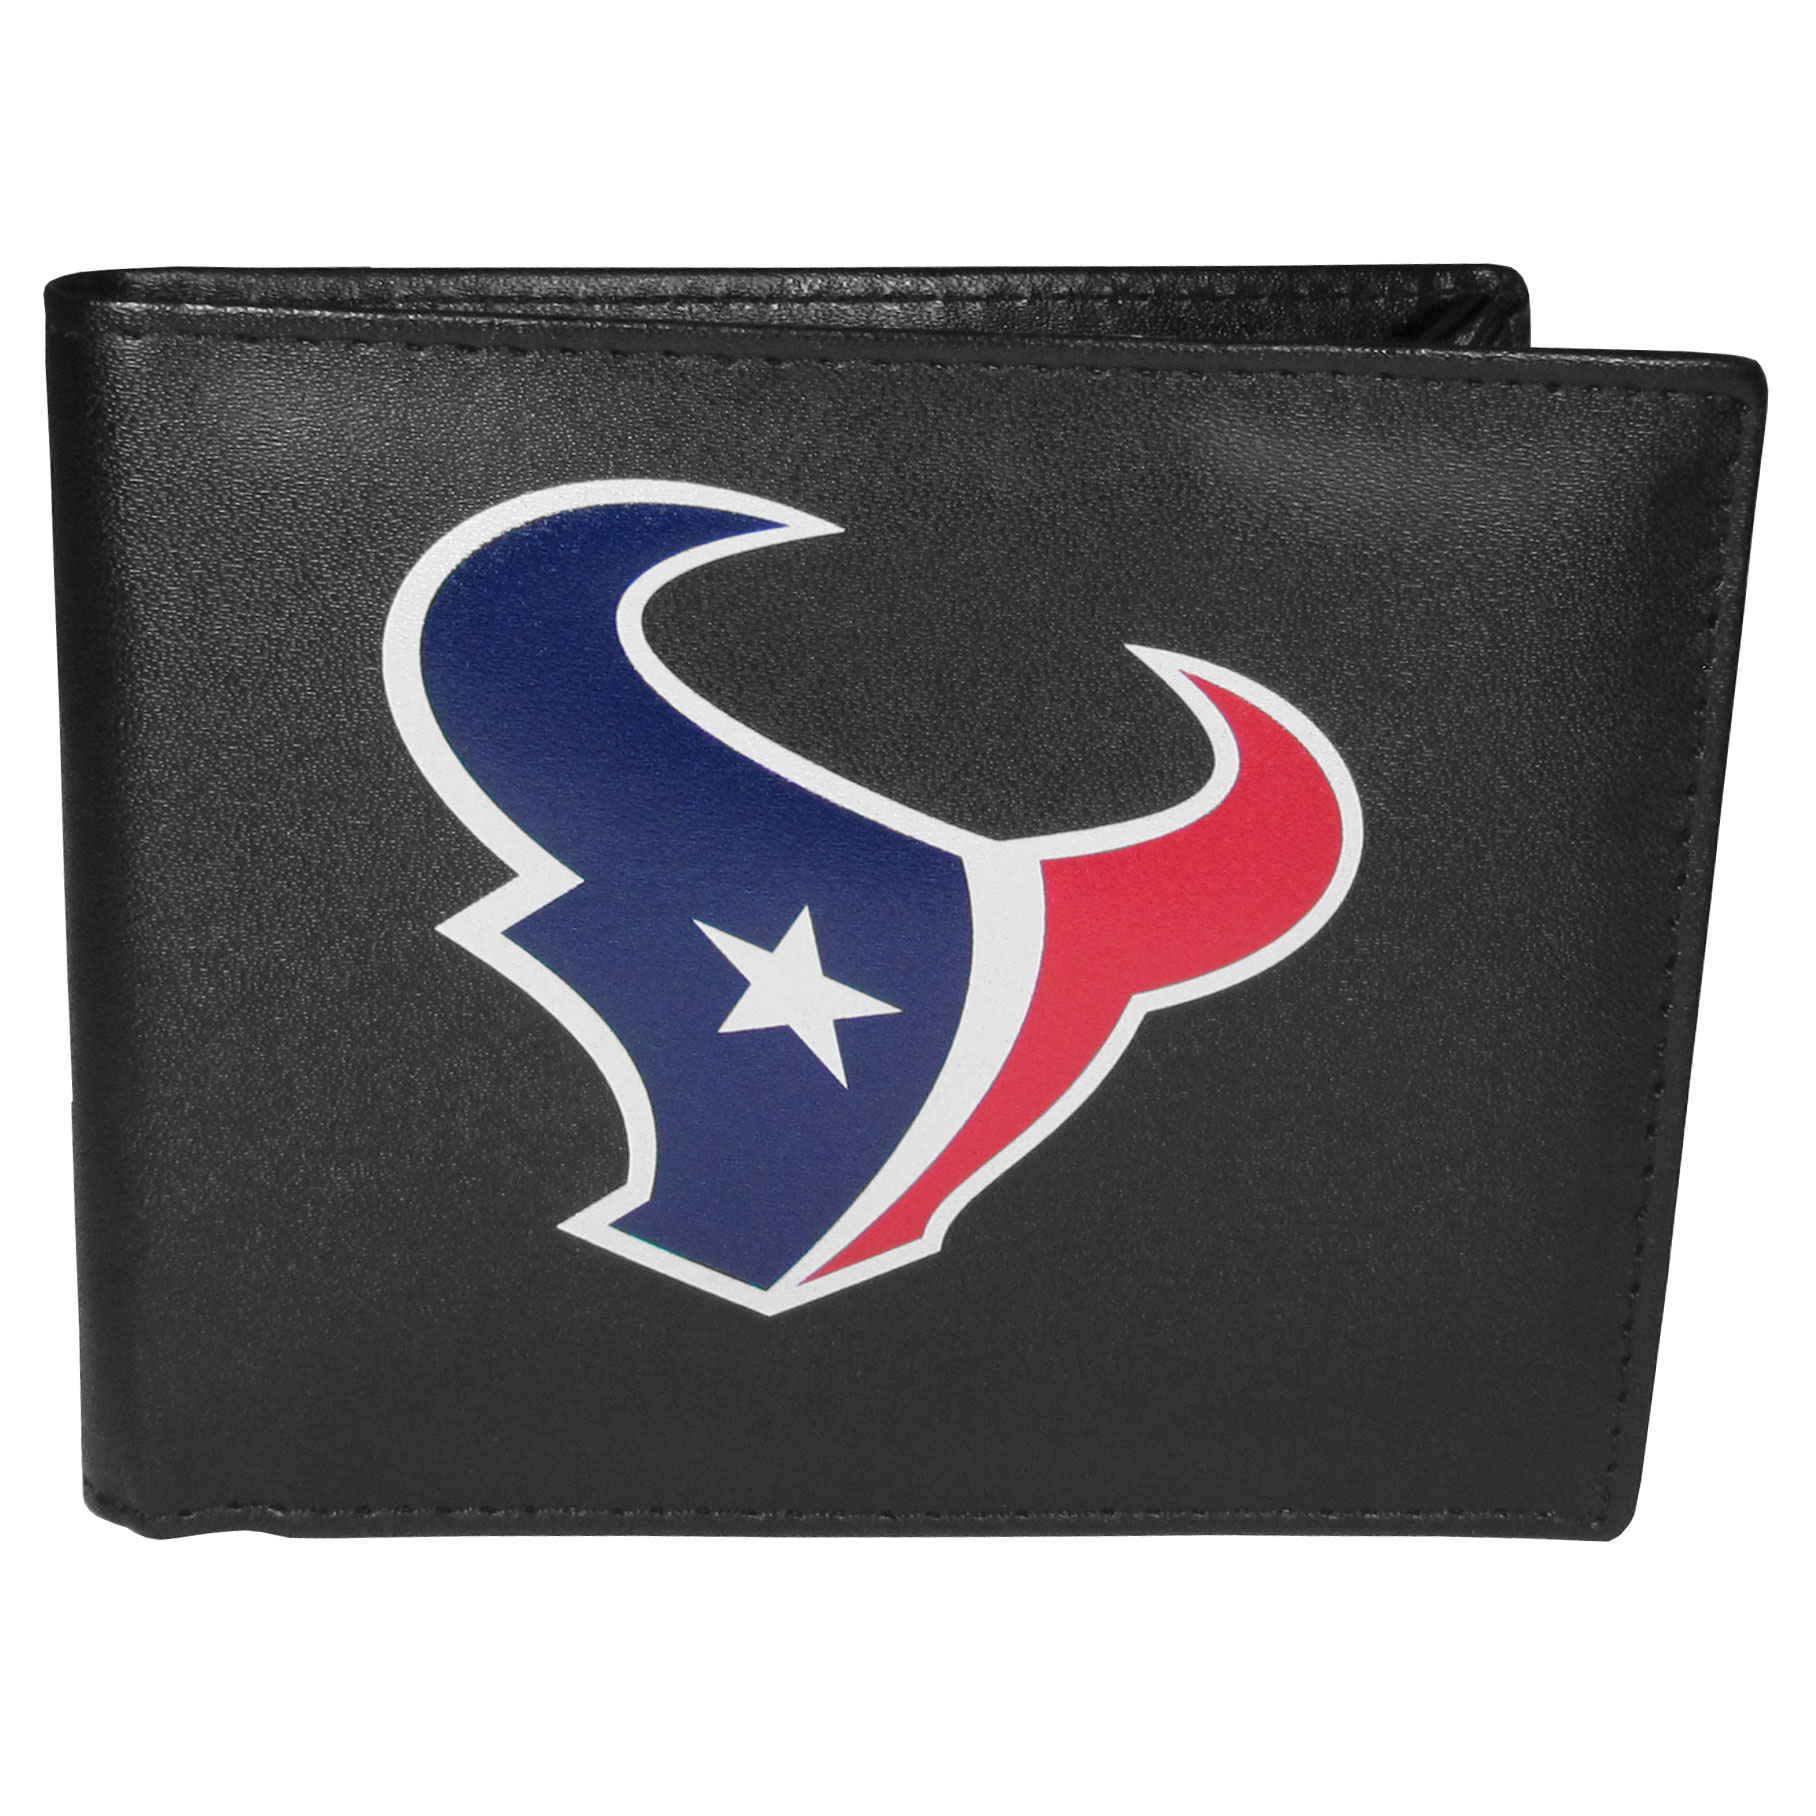 Houston Texans Leather Bi-fold Wallet, Large Logo - Our classic fine leather bi-fold wallet is meticulously crafted with genuine leather that will age beautifully so you will have a quality wallet for years to come. The wallet opens to a large, billfold pocket and numerous credit card slots and has a convenient windowed ID slot. The front of the wallet features an extra large Houston Texans printed logo.